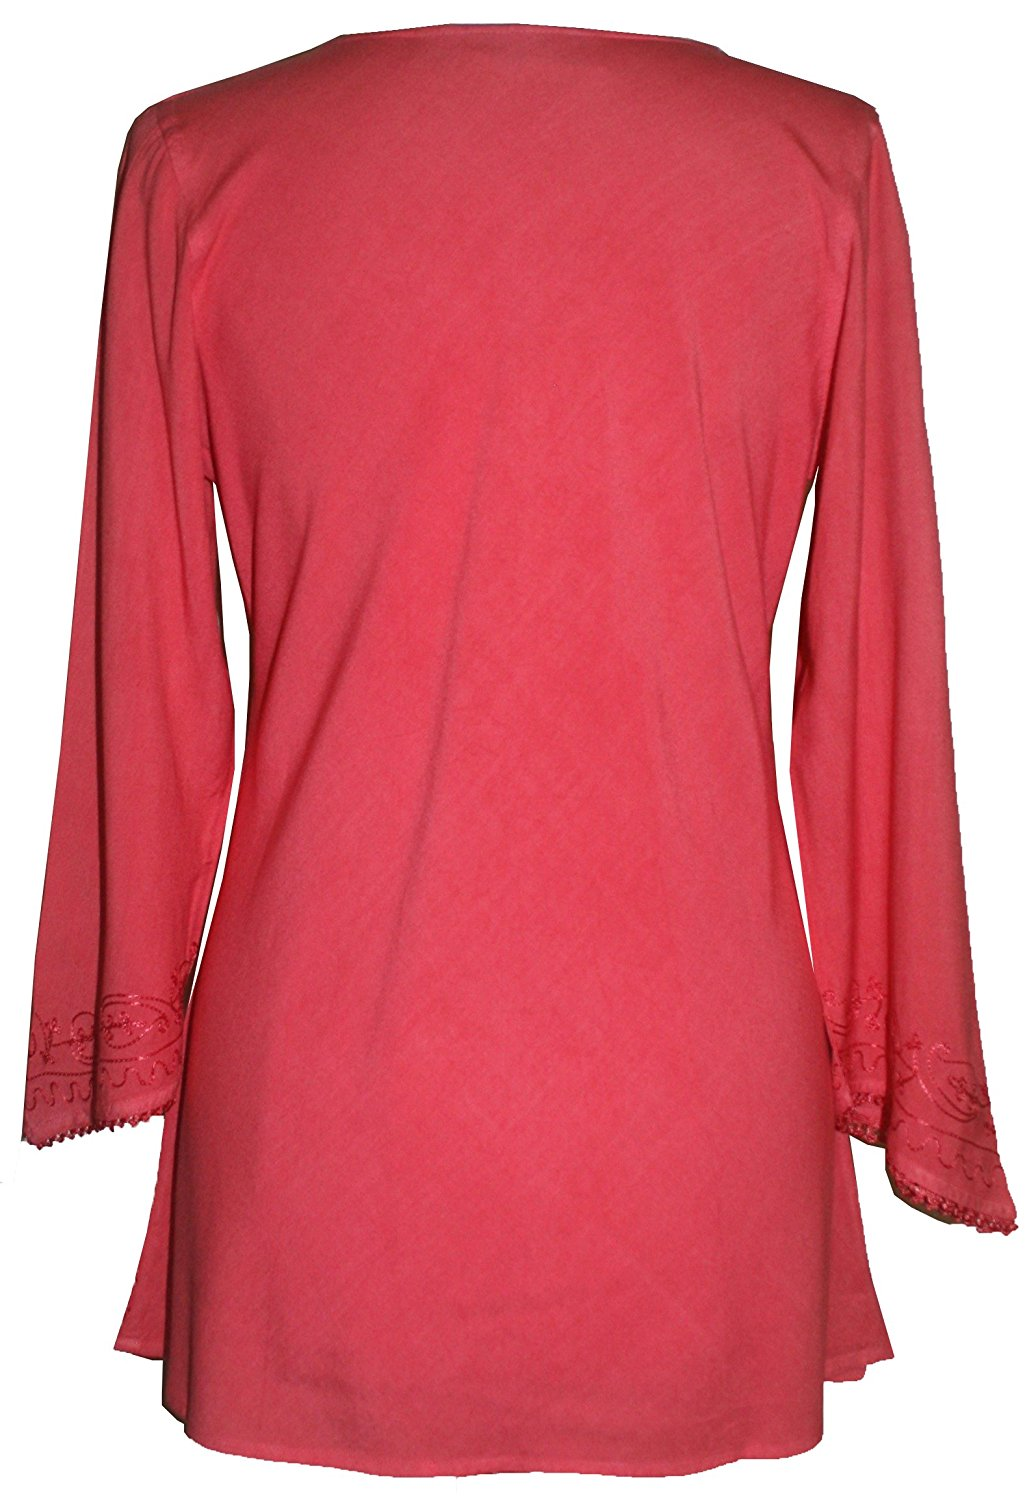 Embroidered Rayon Renaissance Blouse - Agan Traders, Coral